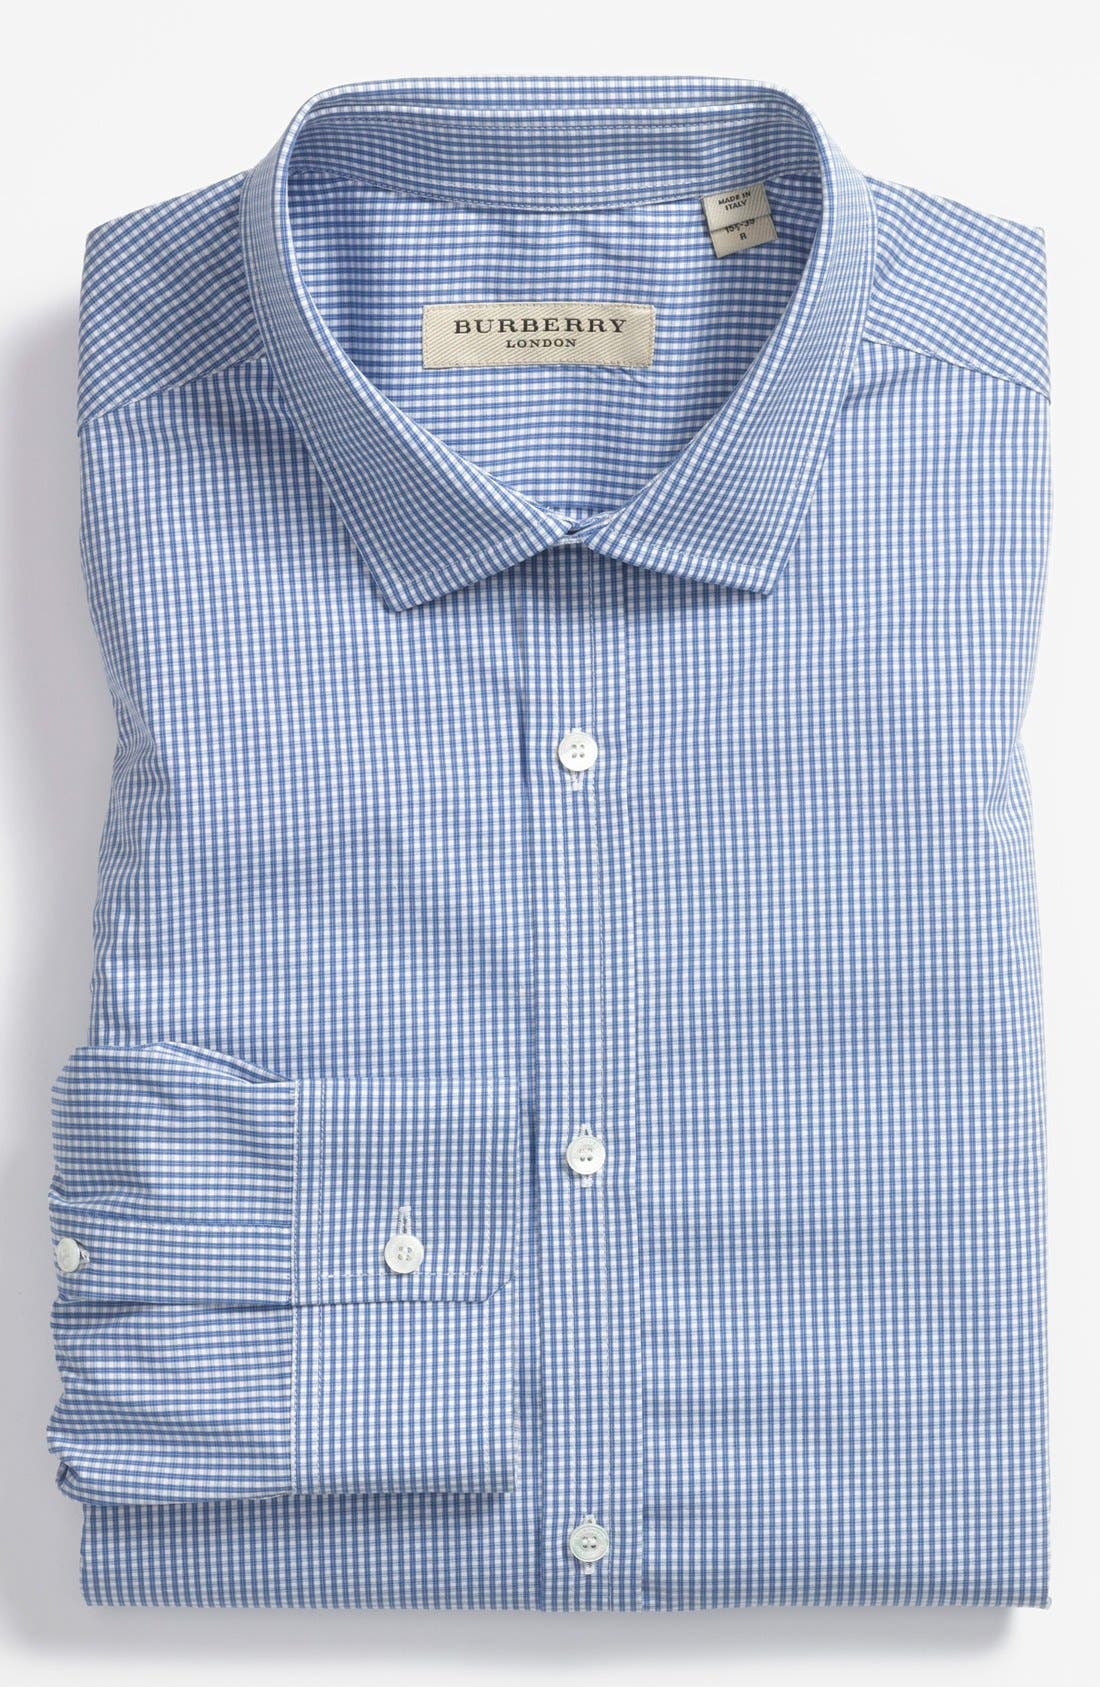 Alternate Image 1 Selected - Burberry London Check Tailored Fit Dress Shirt